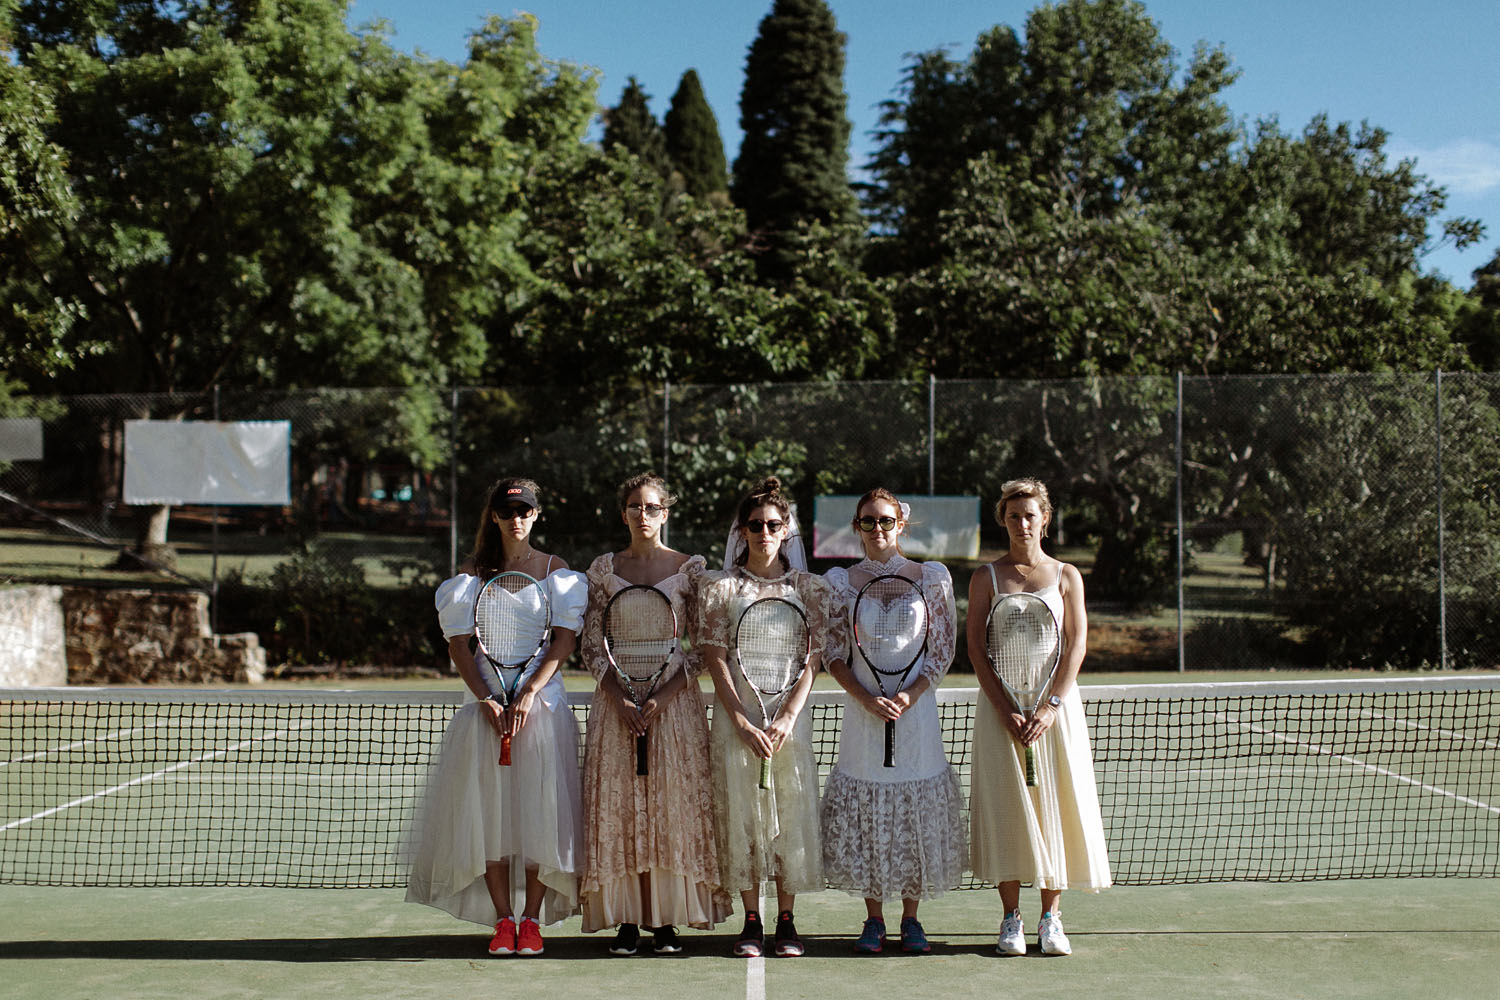 bridesmaids vintage wedding dresses playing tennis